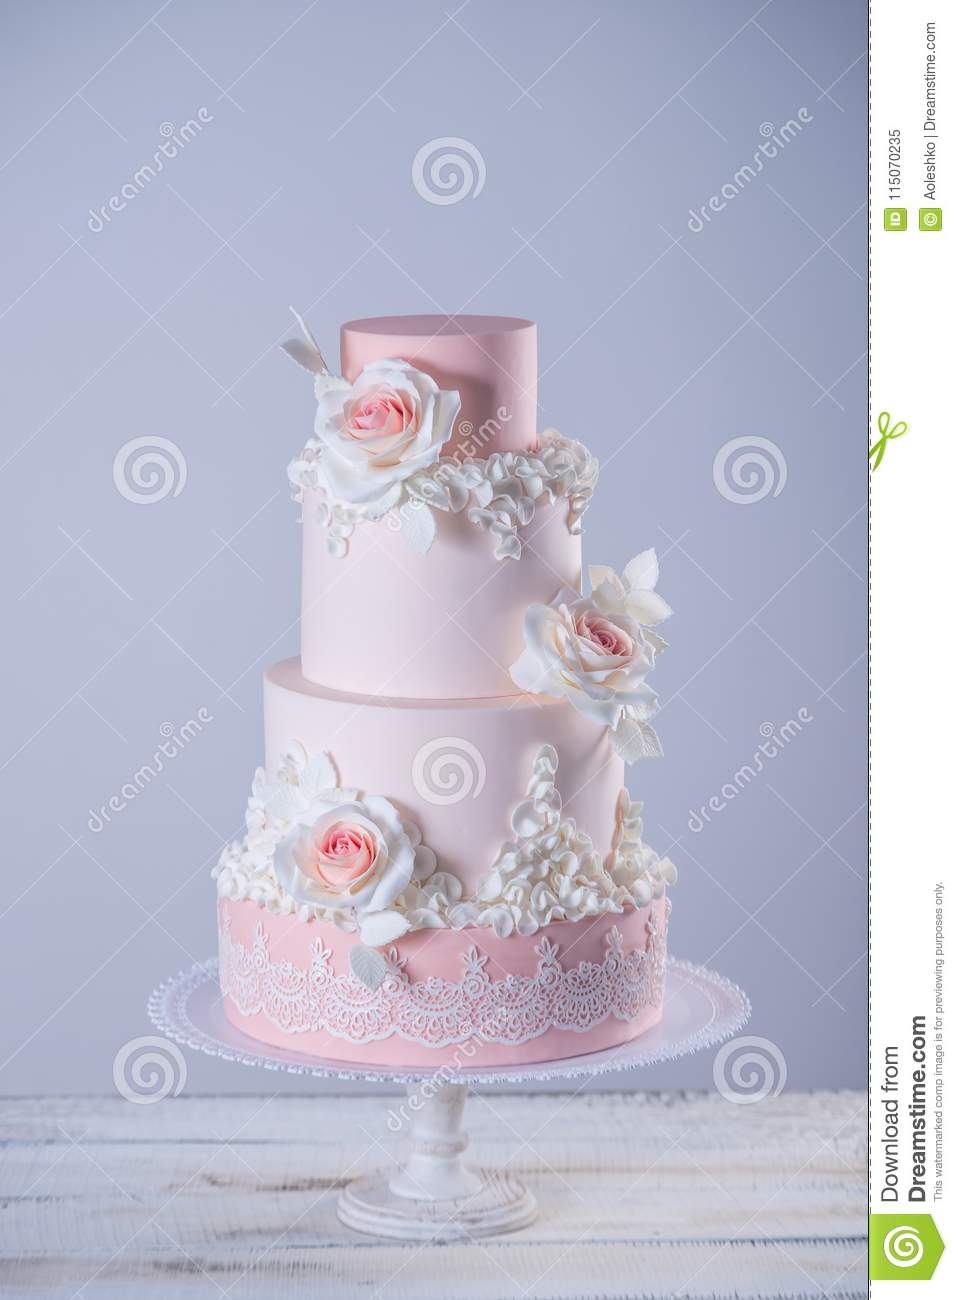 Beautiful Elegant Four Tiered Pink Wedding Cake Decorated With Roses